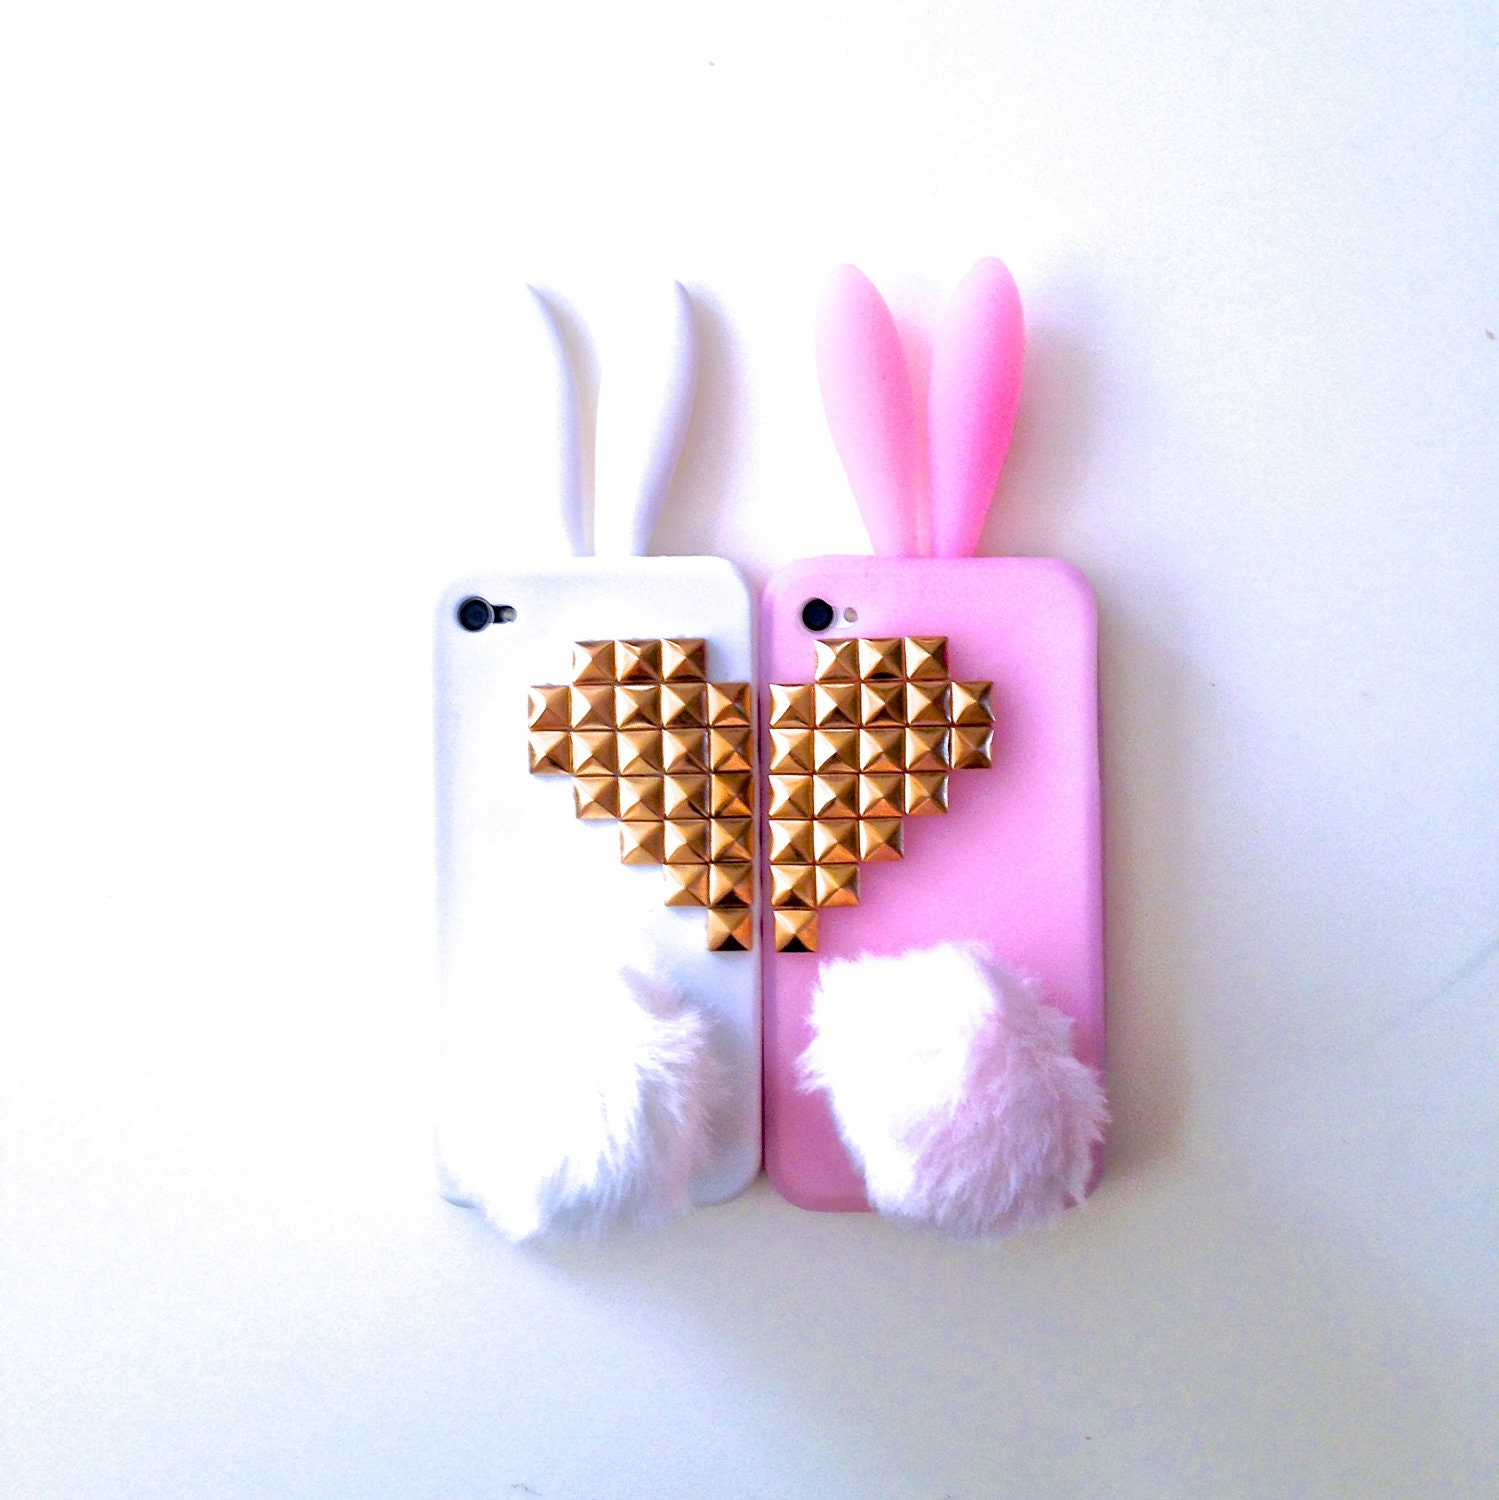 Best Friends Bunny Rabbit Heart Studded iPhone 4 4s Silicone